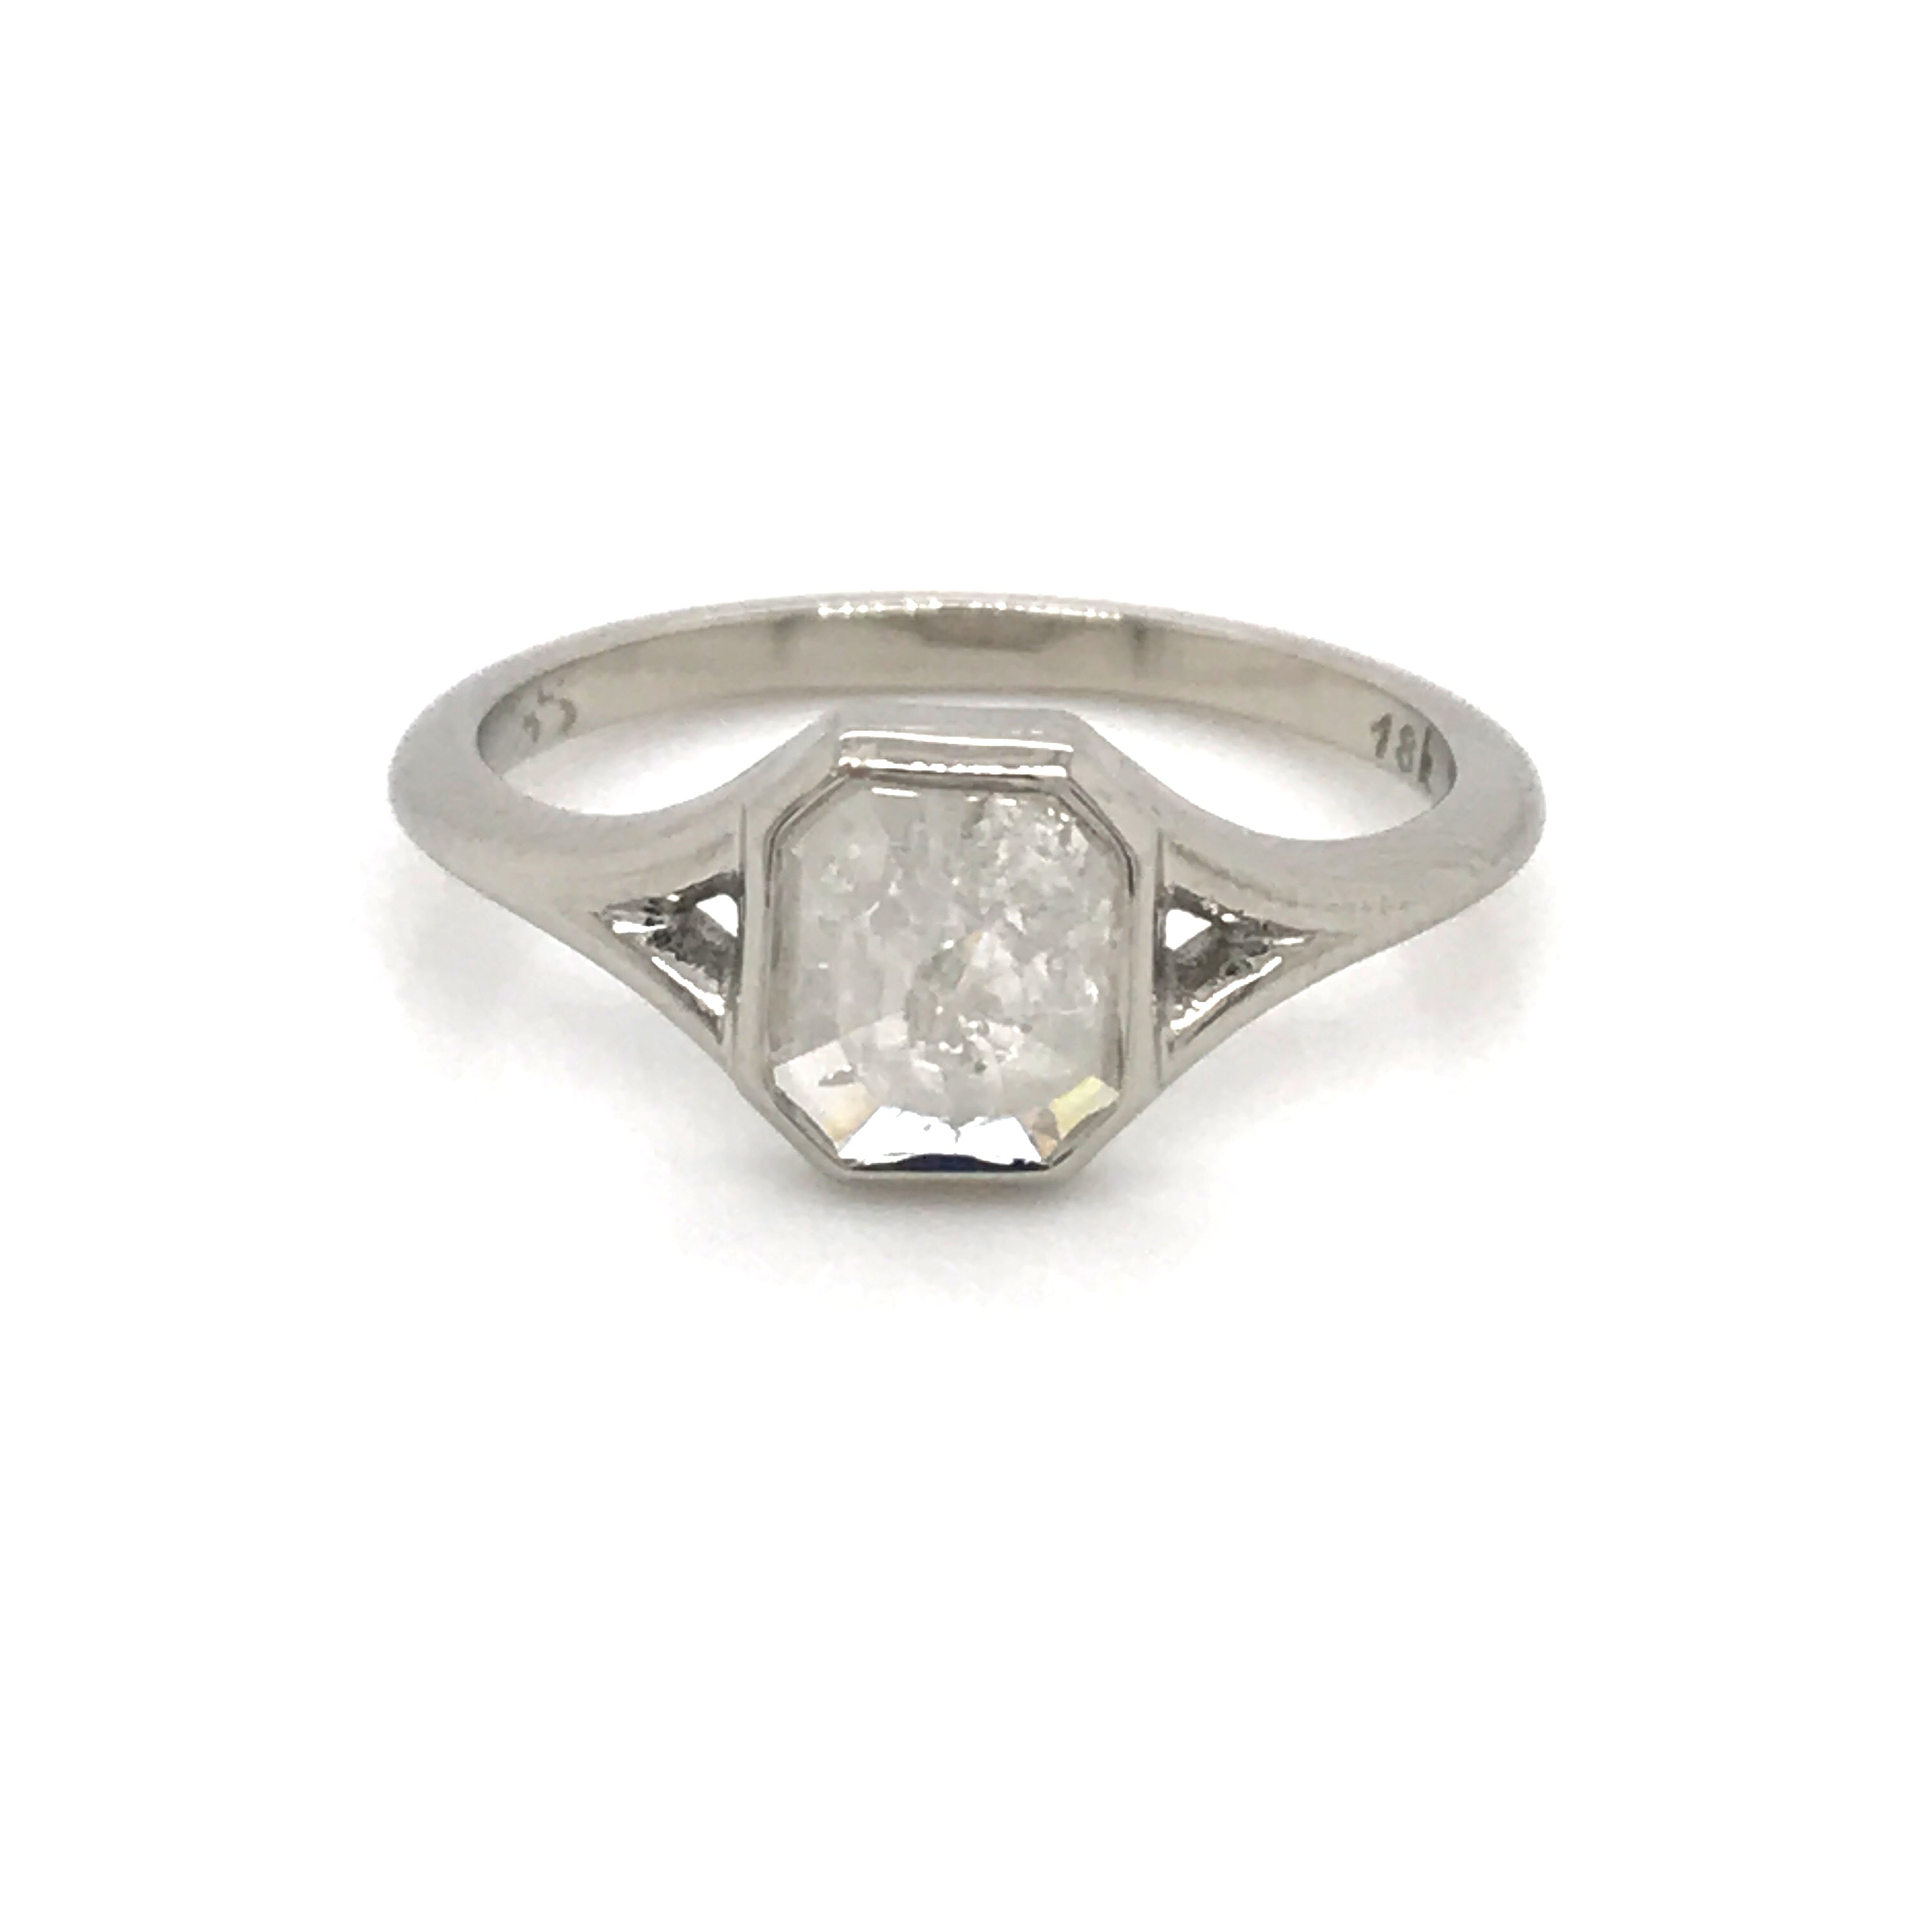 cushion cut grey diamond ring, sydney strong, Greenville south carolina